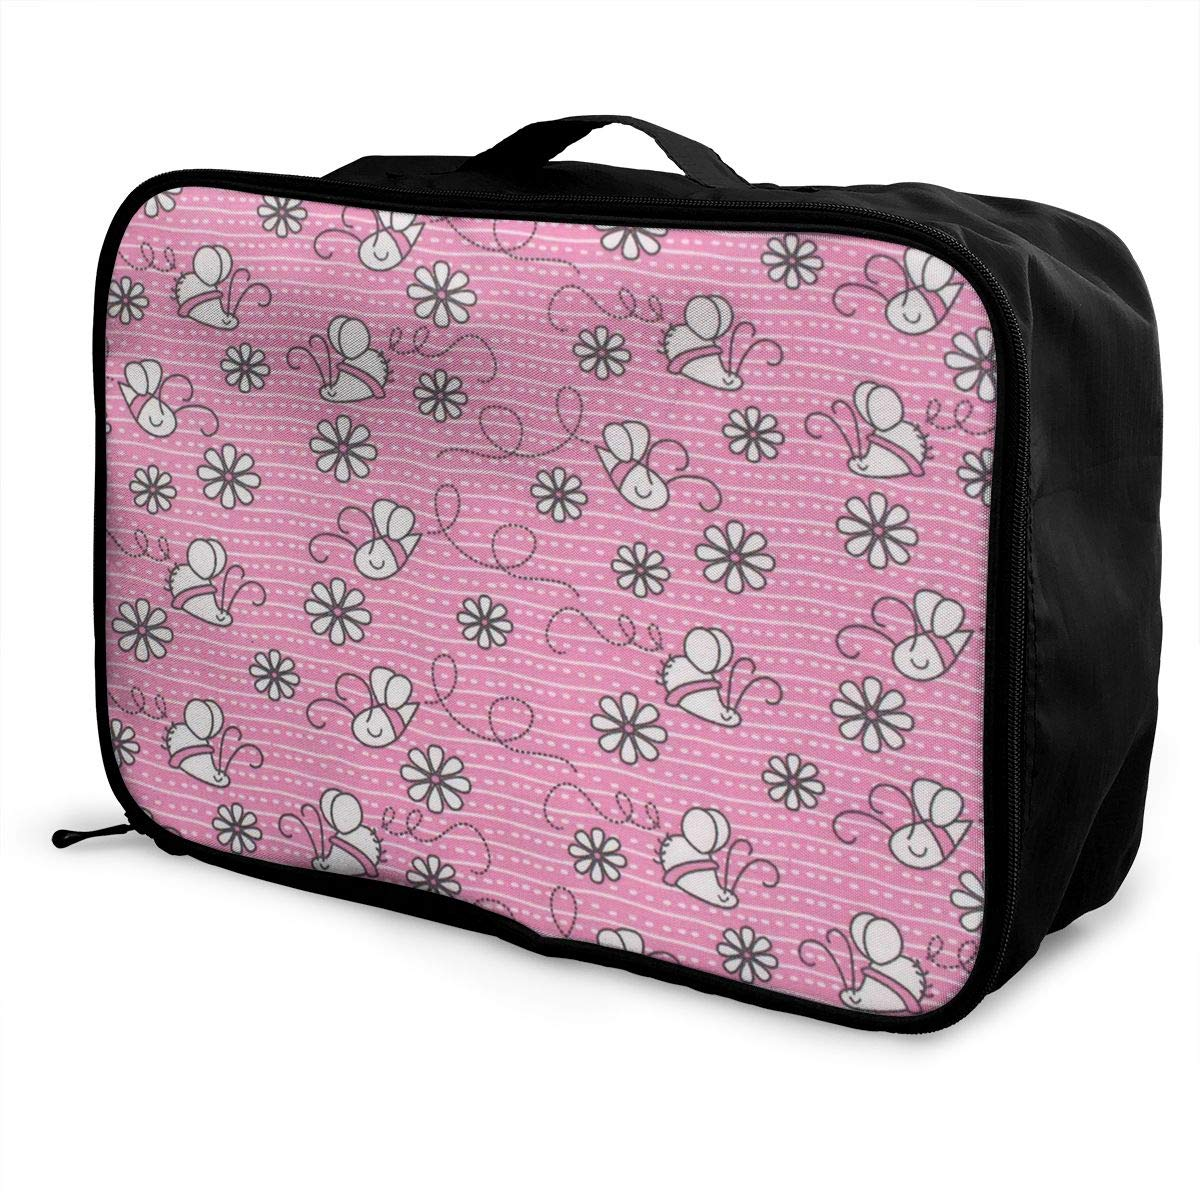 Travel Luggage Duffle Bag Lightweight Portable Handbag Bee Flowers Pattern Large Capacity Waterproof Foldable Storage Tote